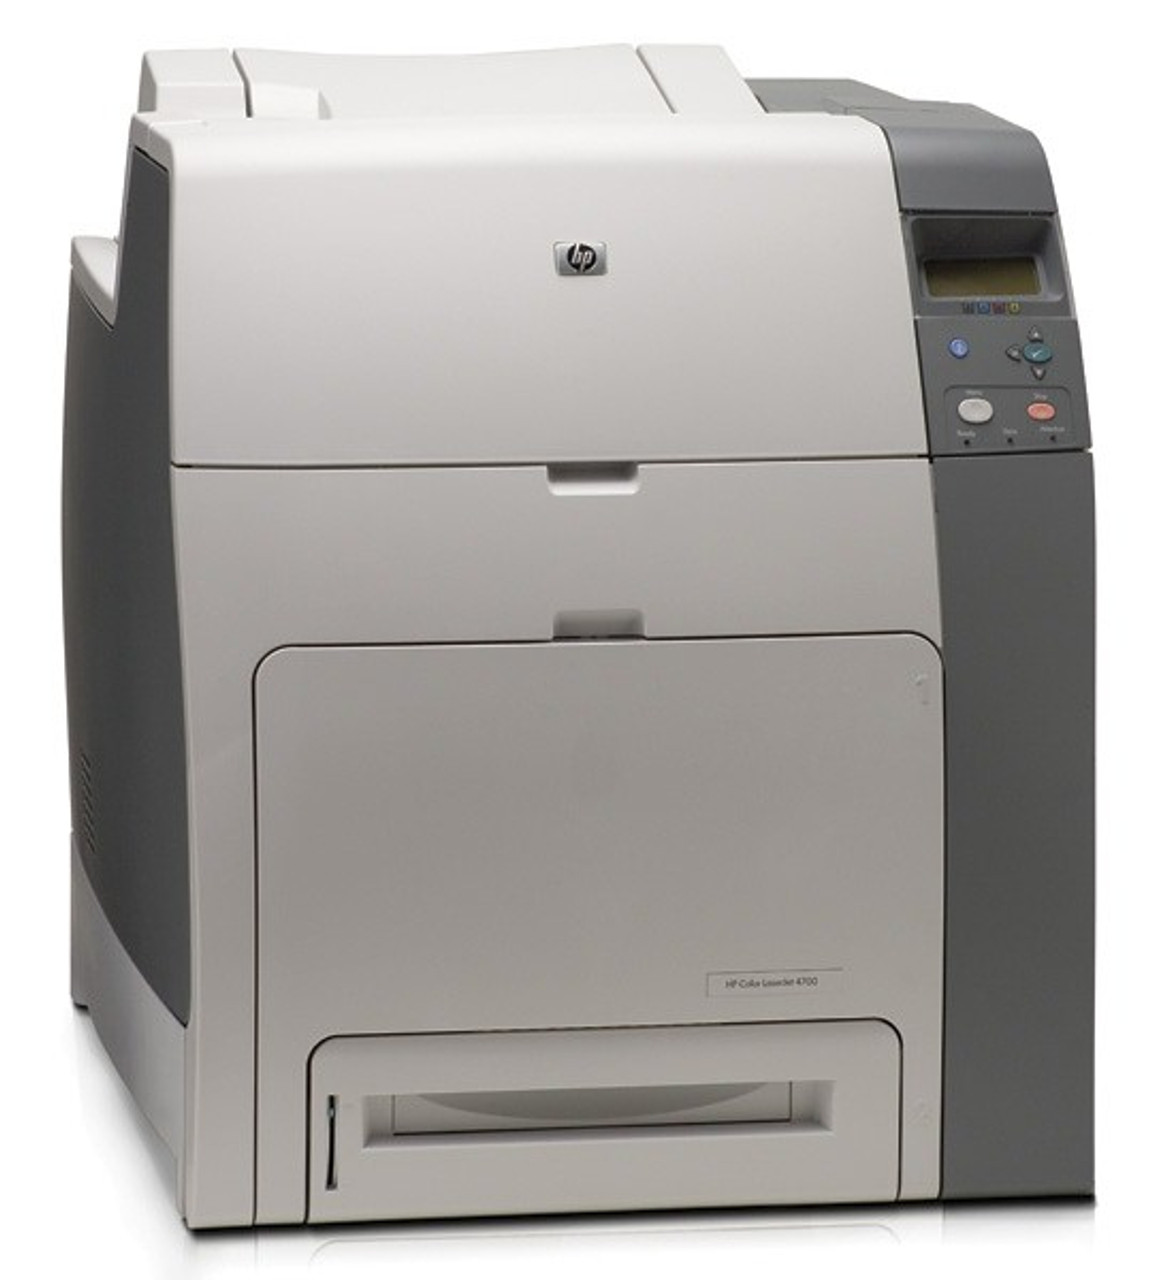 HP Color LaserJet 4700dn - Q7493AR - HP Laser Printer for sale